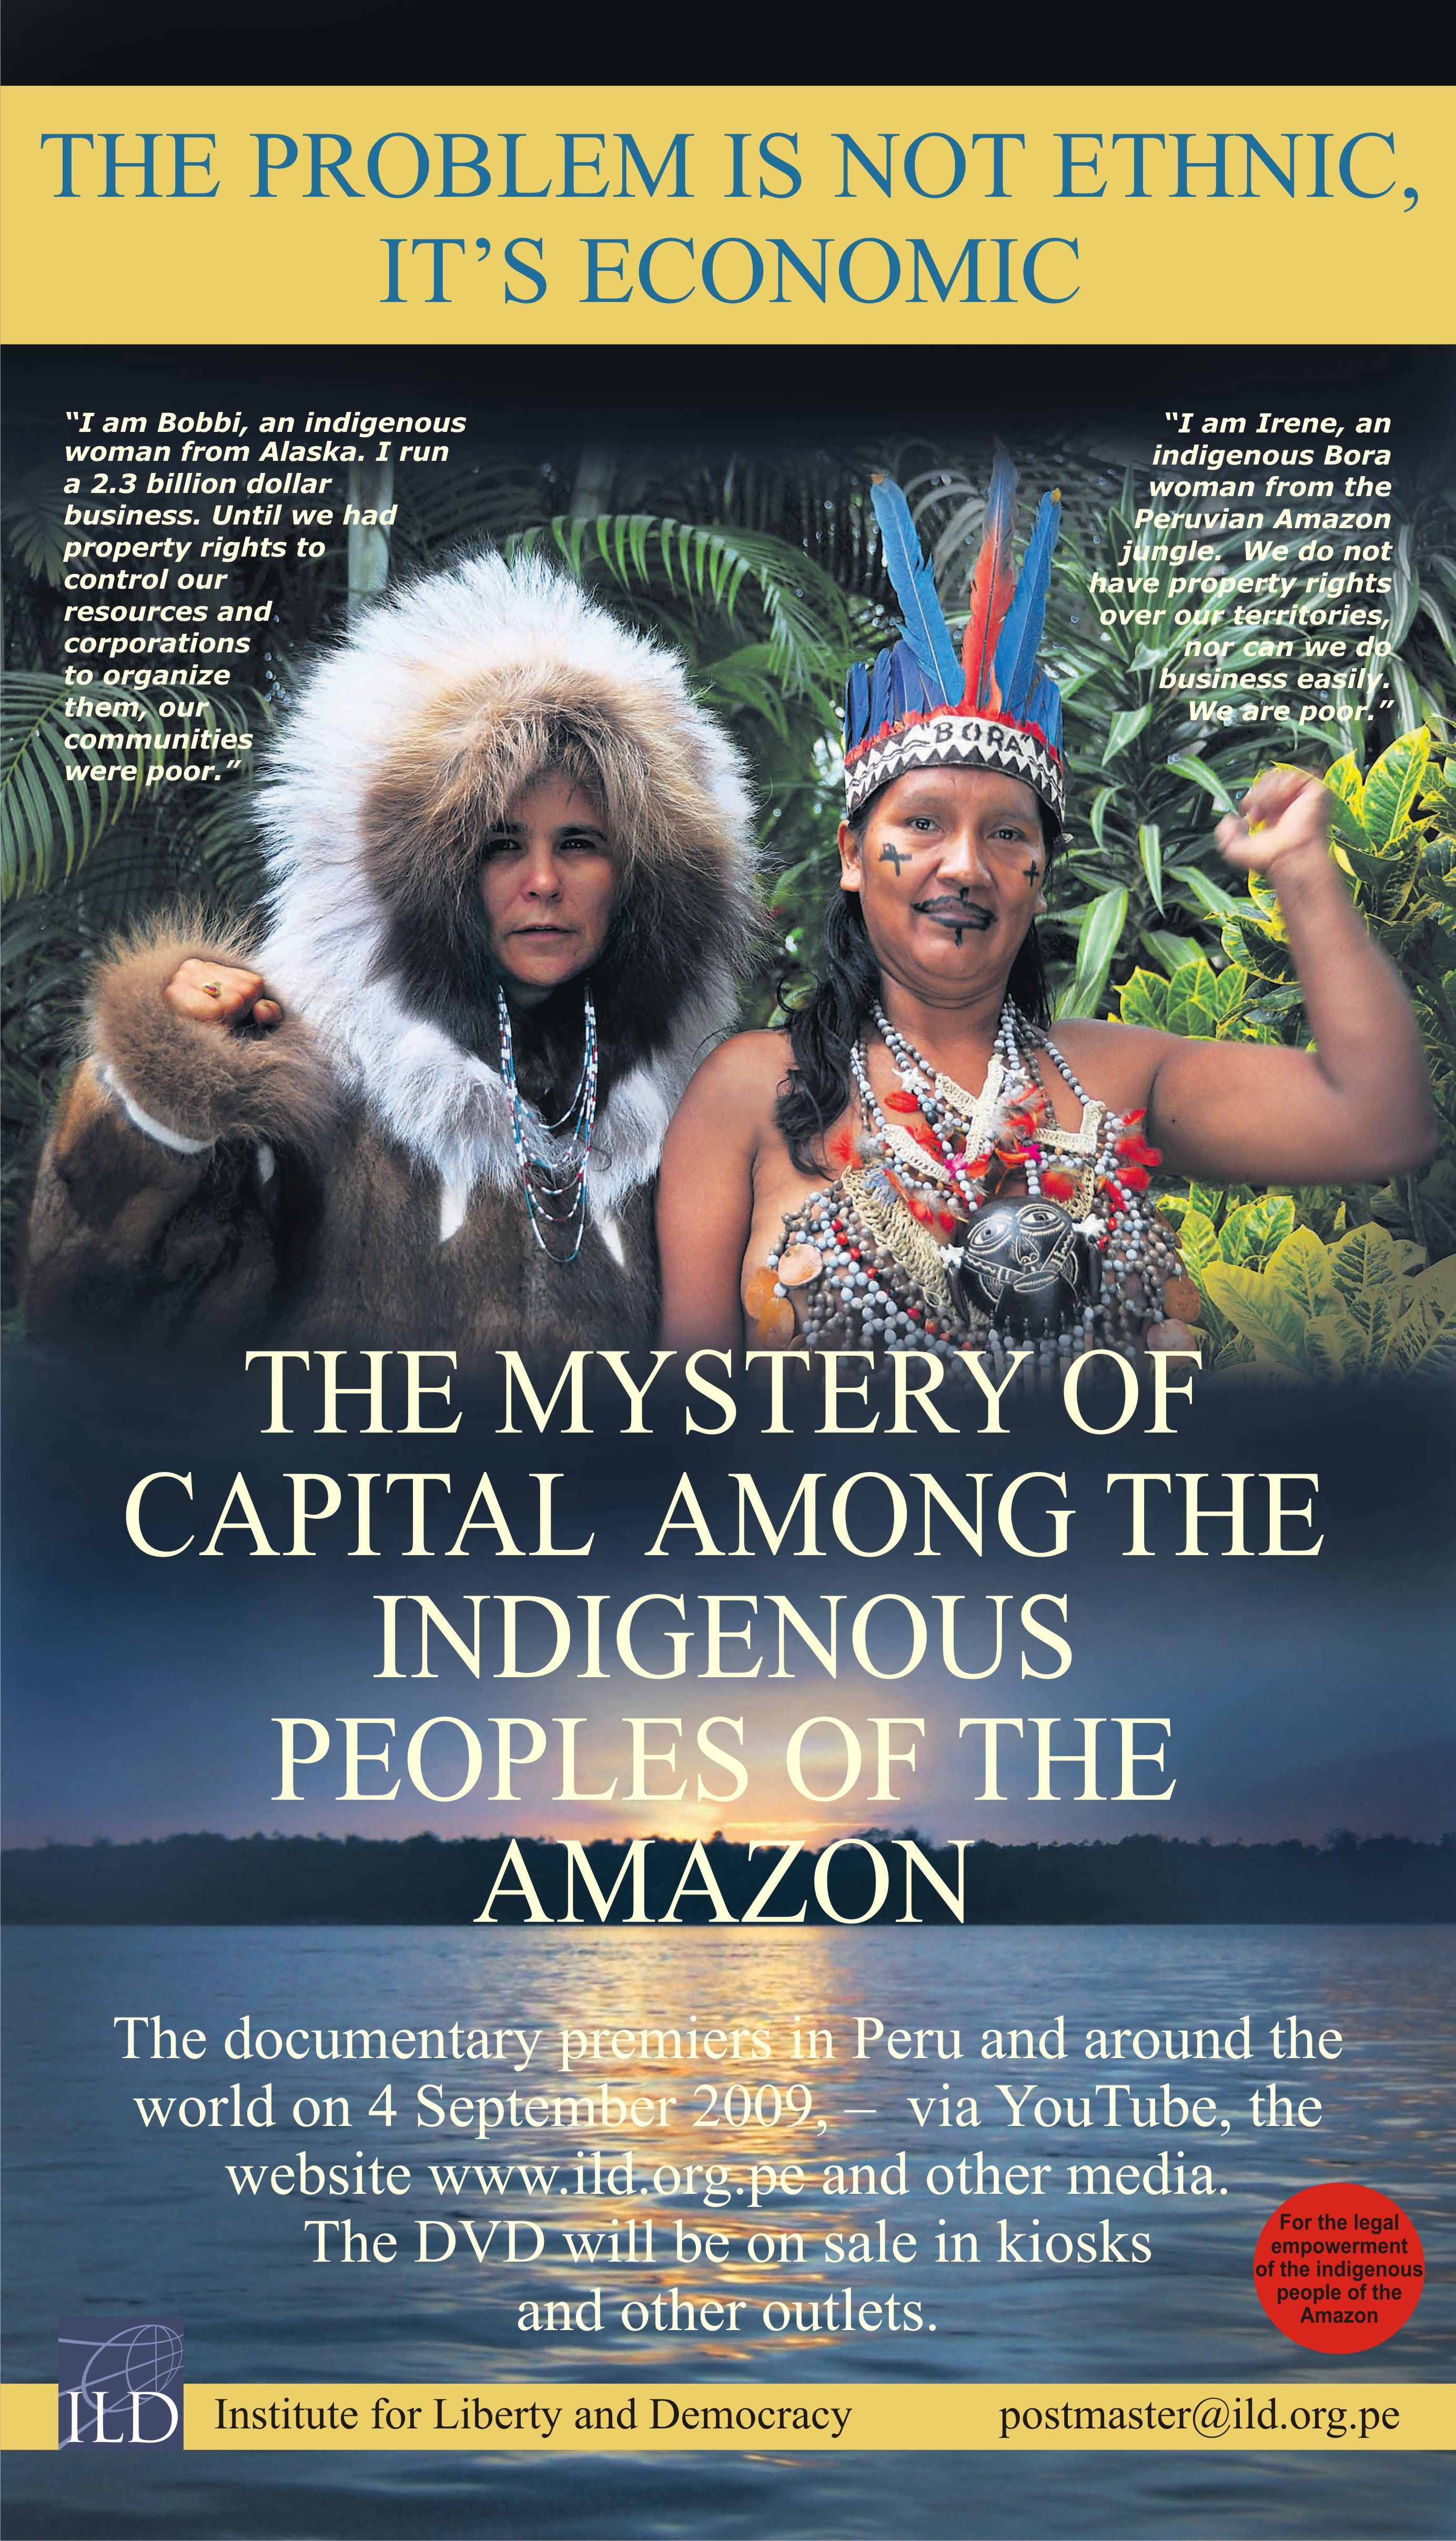 File:Poster for Documentary The Mystery of Capital among the Indigenous Peoples of the Amazon